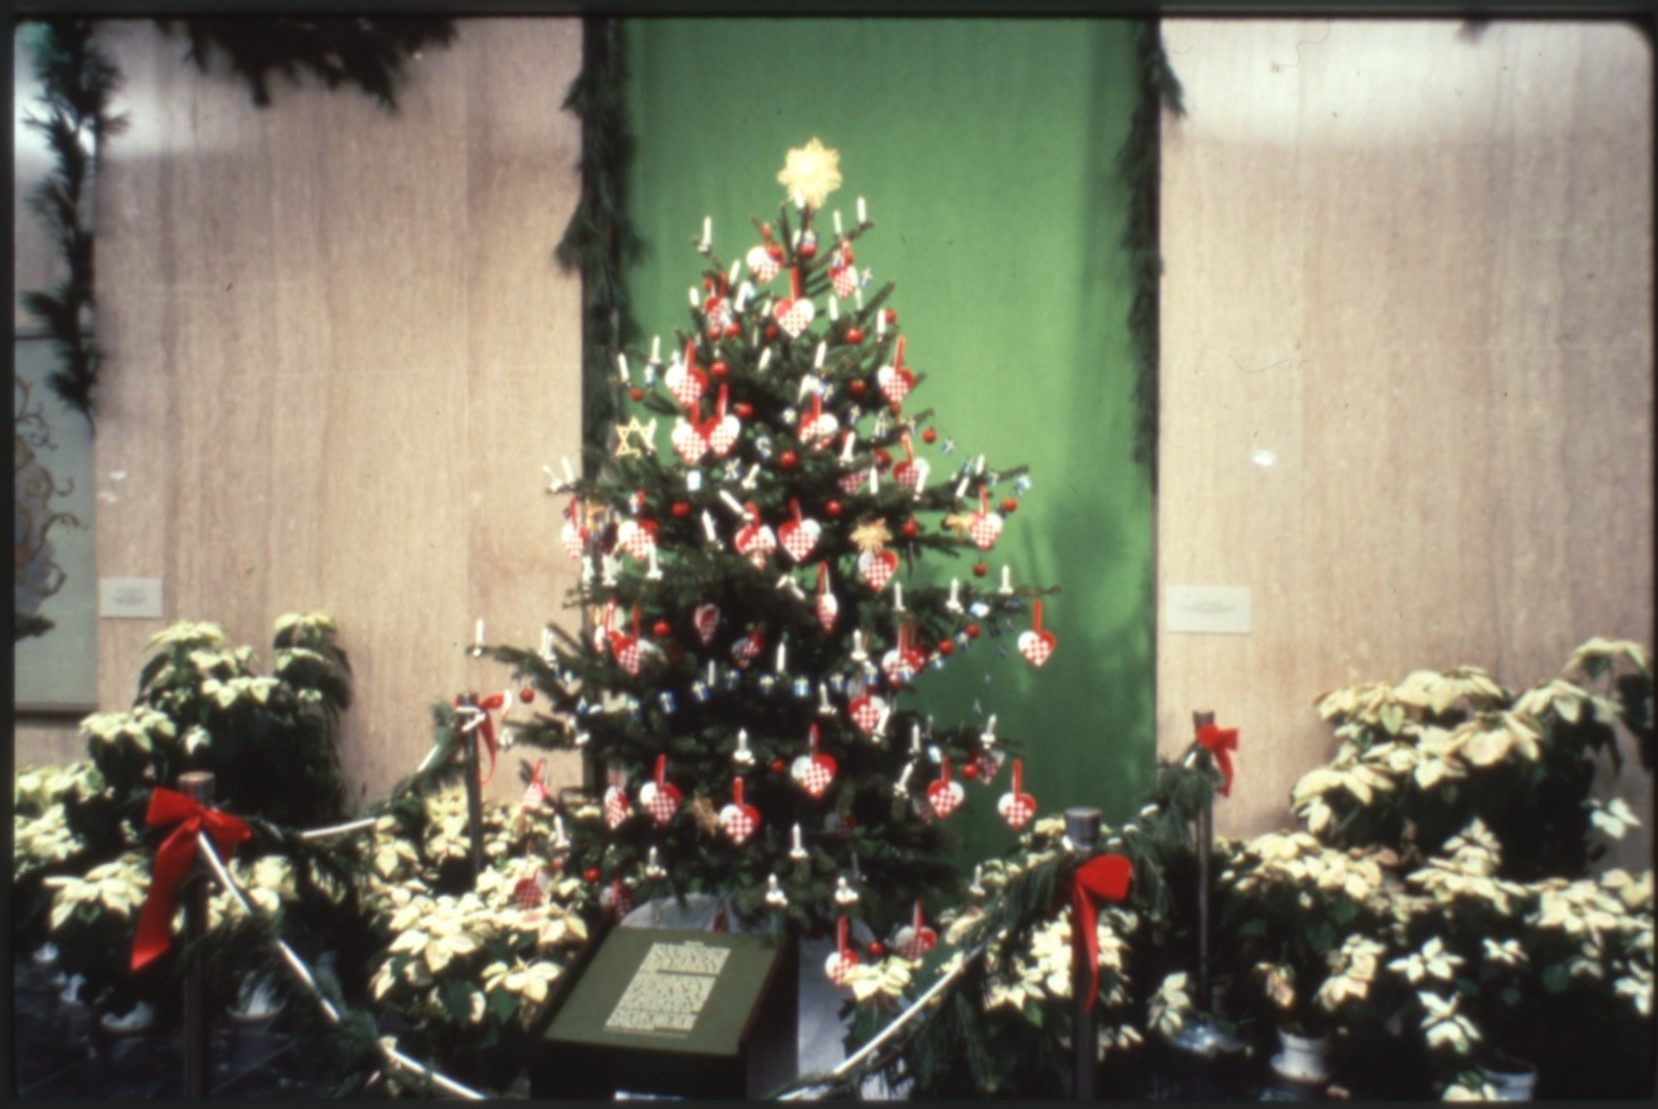 Swedish Tree, 1980. Smithsonian Institution Archives, Accession 11-009: Smithsonian Photographic Ser